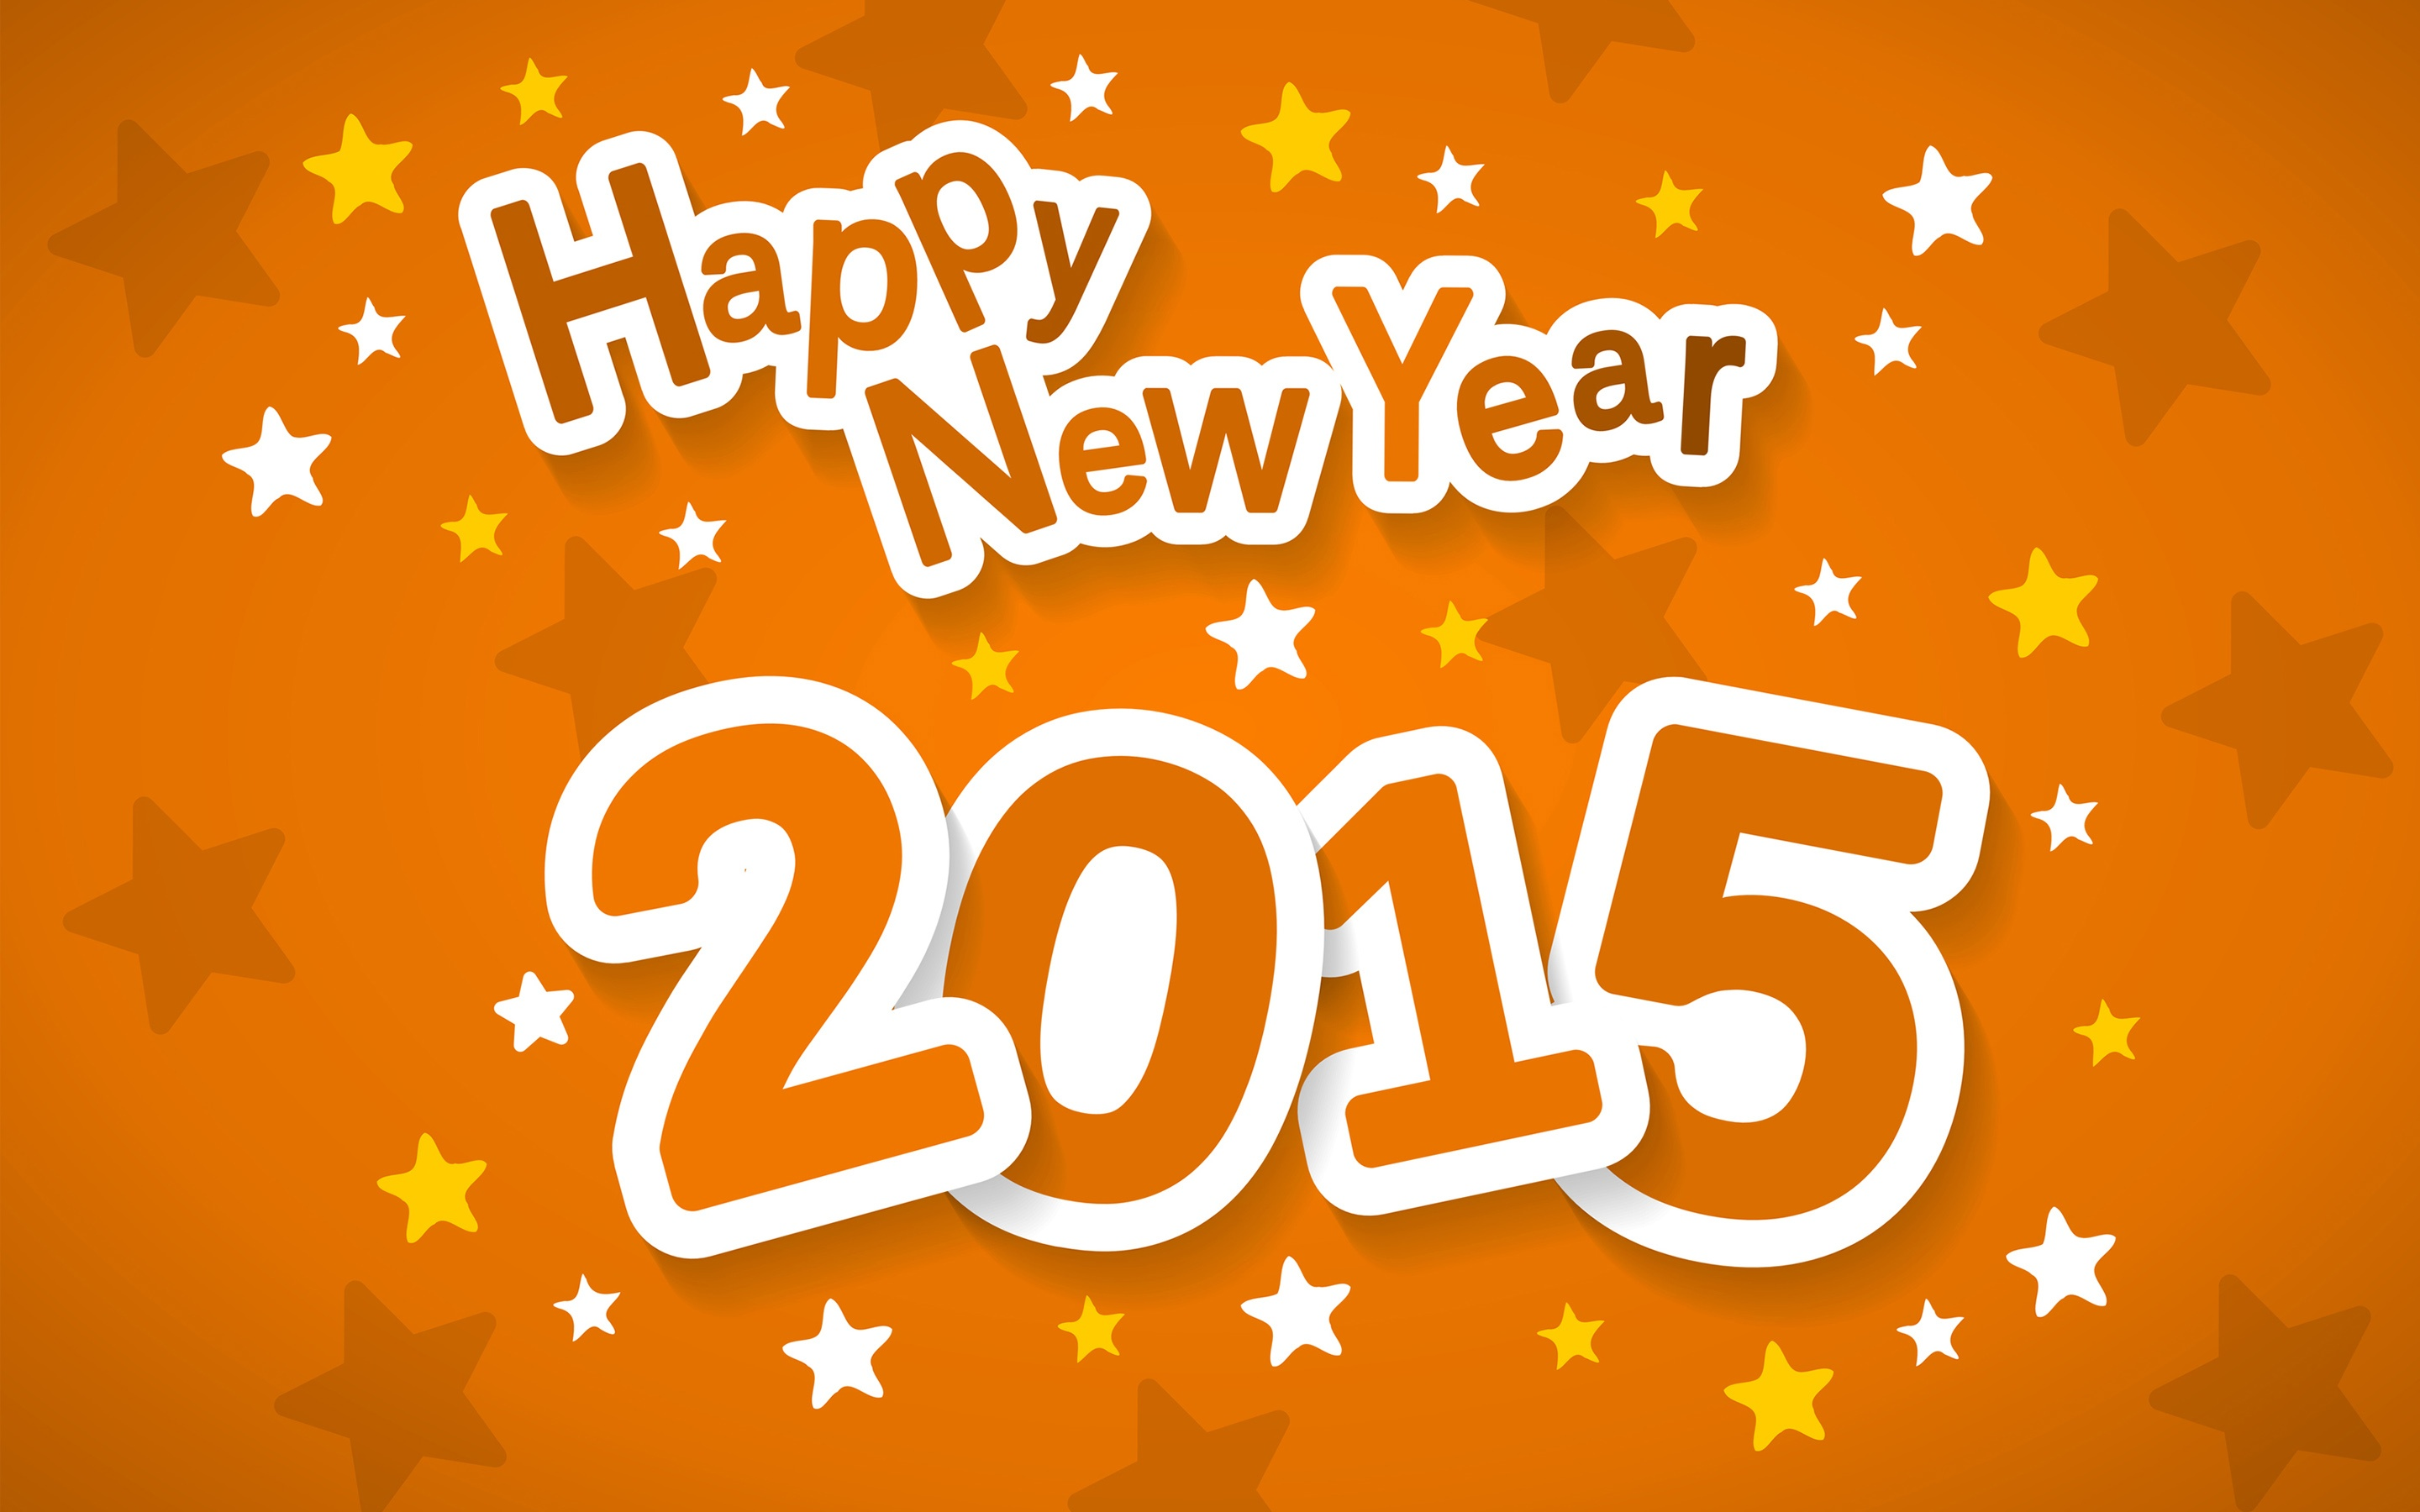 New Year 2015 Hd Wallpaper Background Image 2880x1800 Id